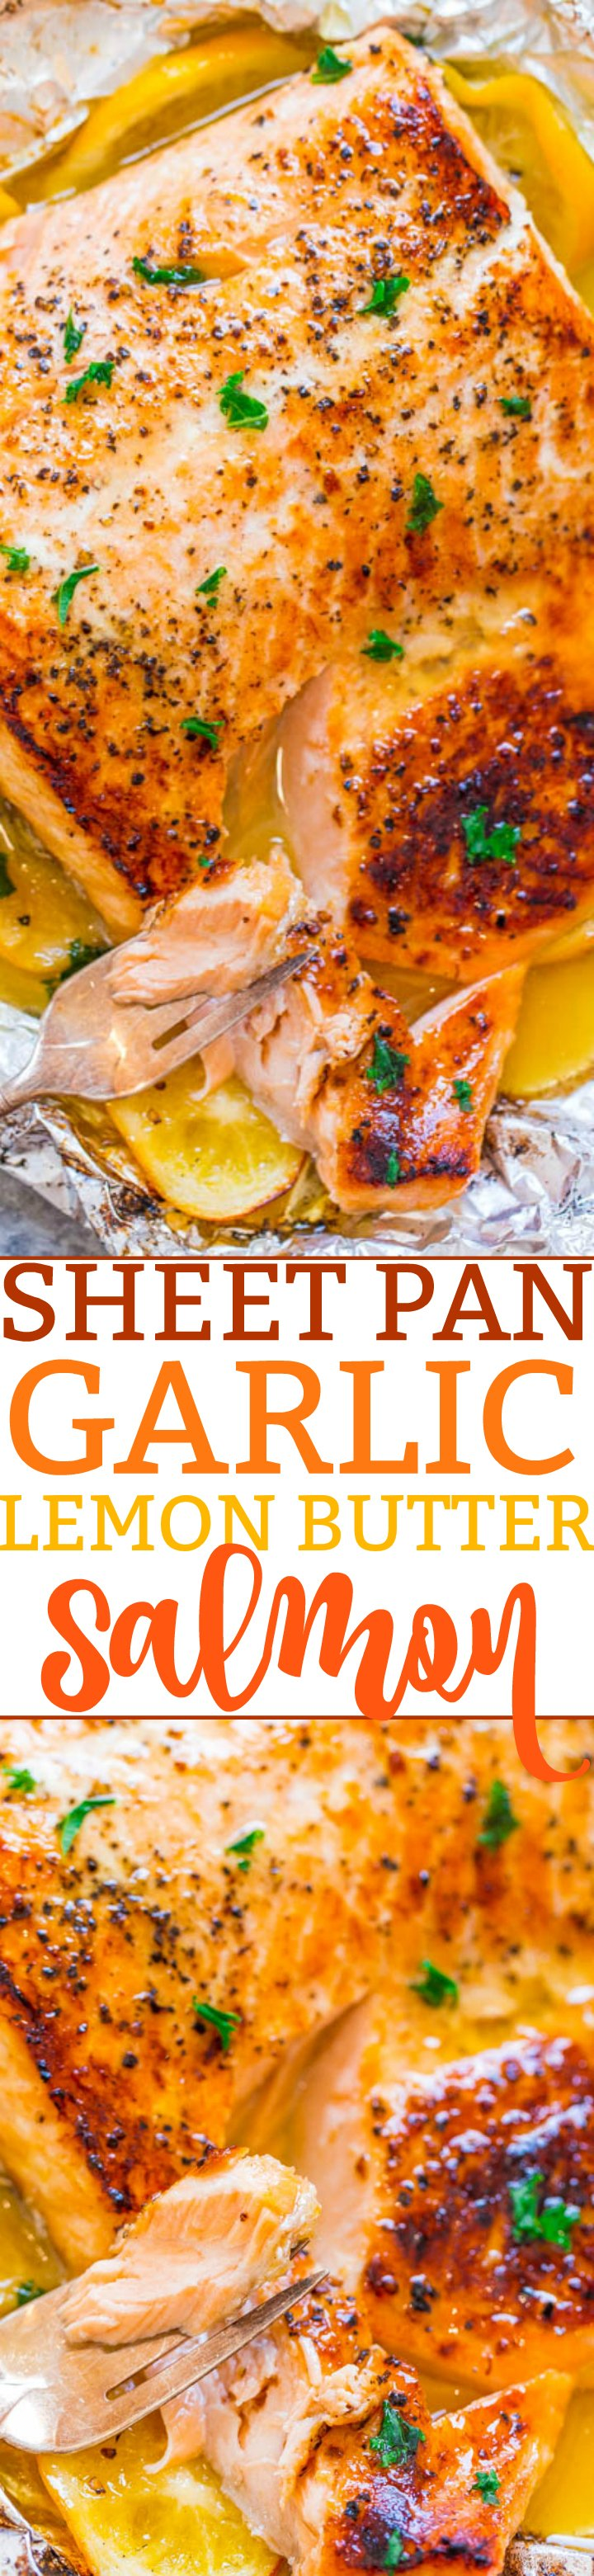 Sheet Pan Garlic Lemon Butter Salmon - Juicy salmon at home in 30 minutes that's EASY and tastes BETTER than from a restaurant!! The butter is infused with lemon and garlic and adds so much FLAVOR!!